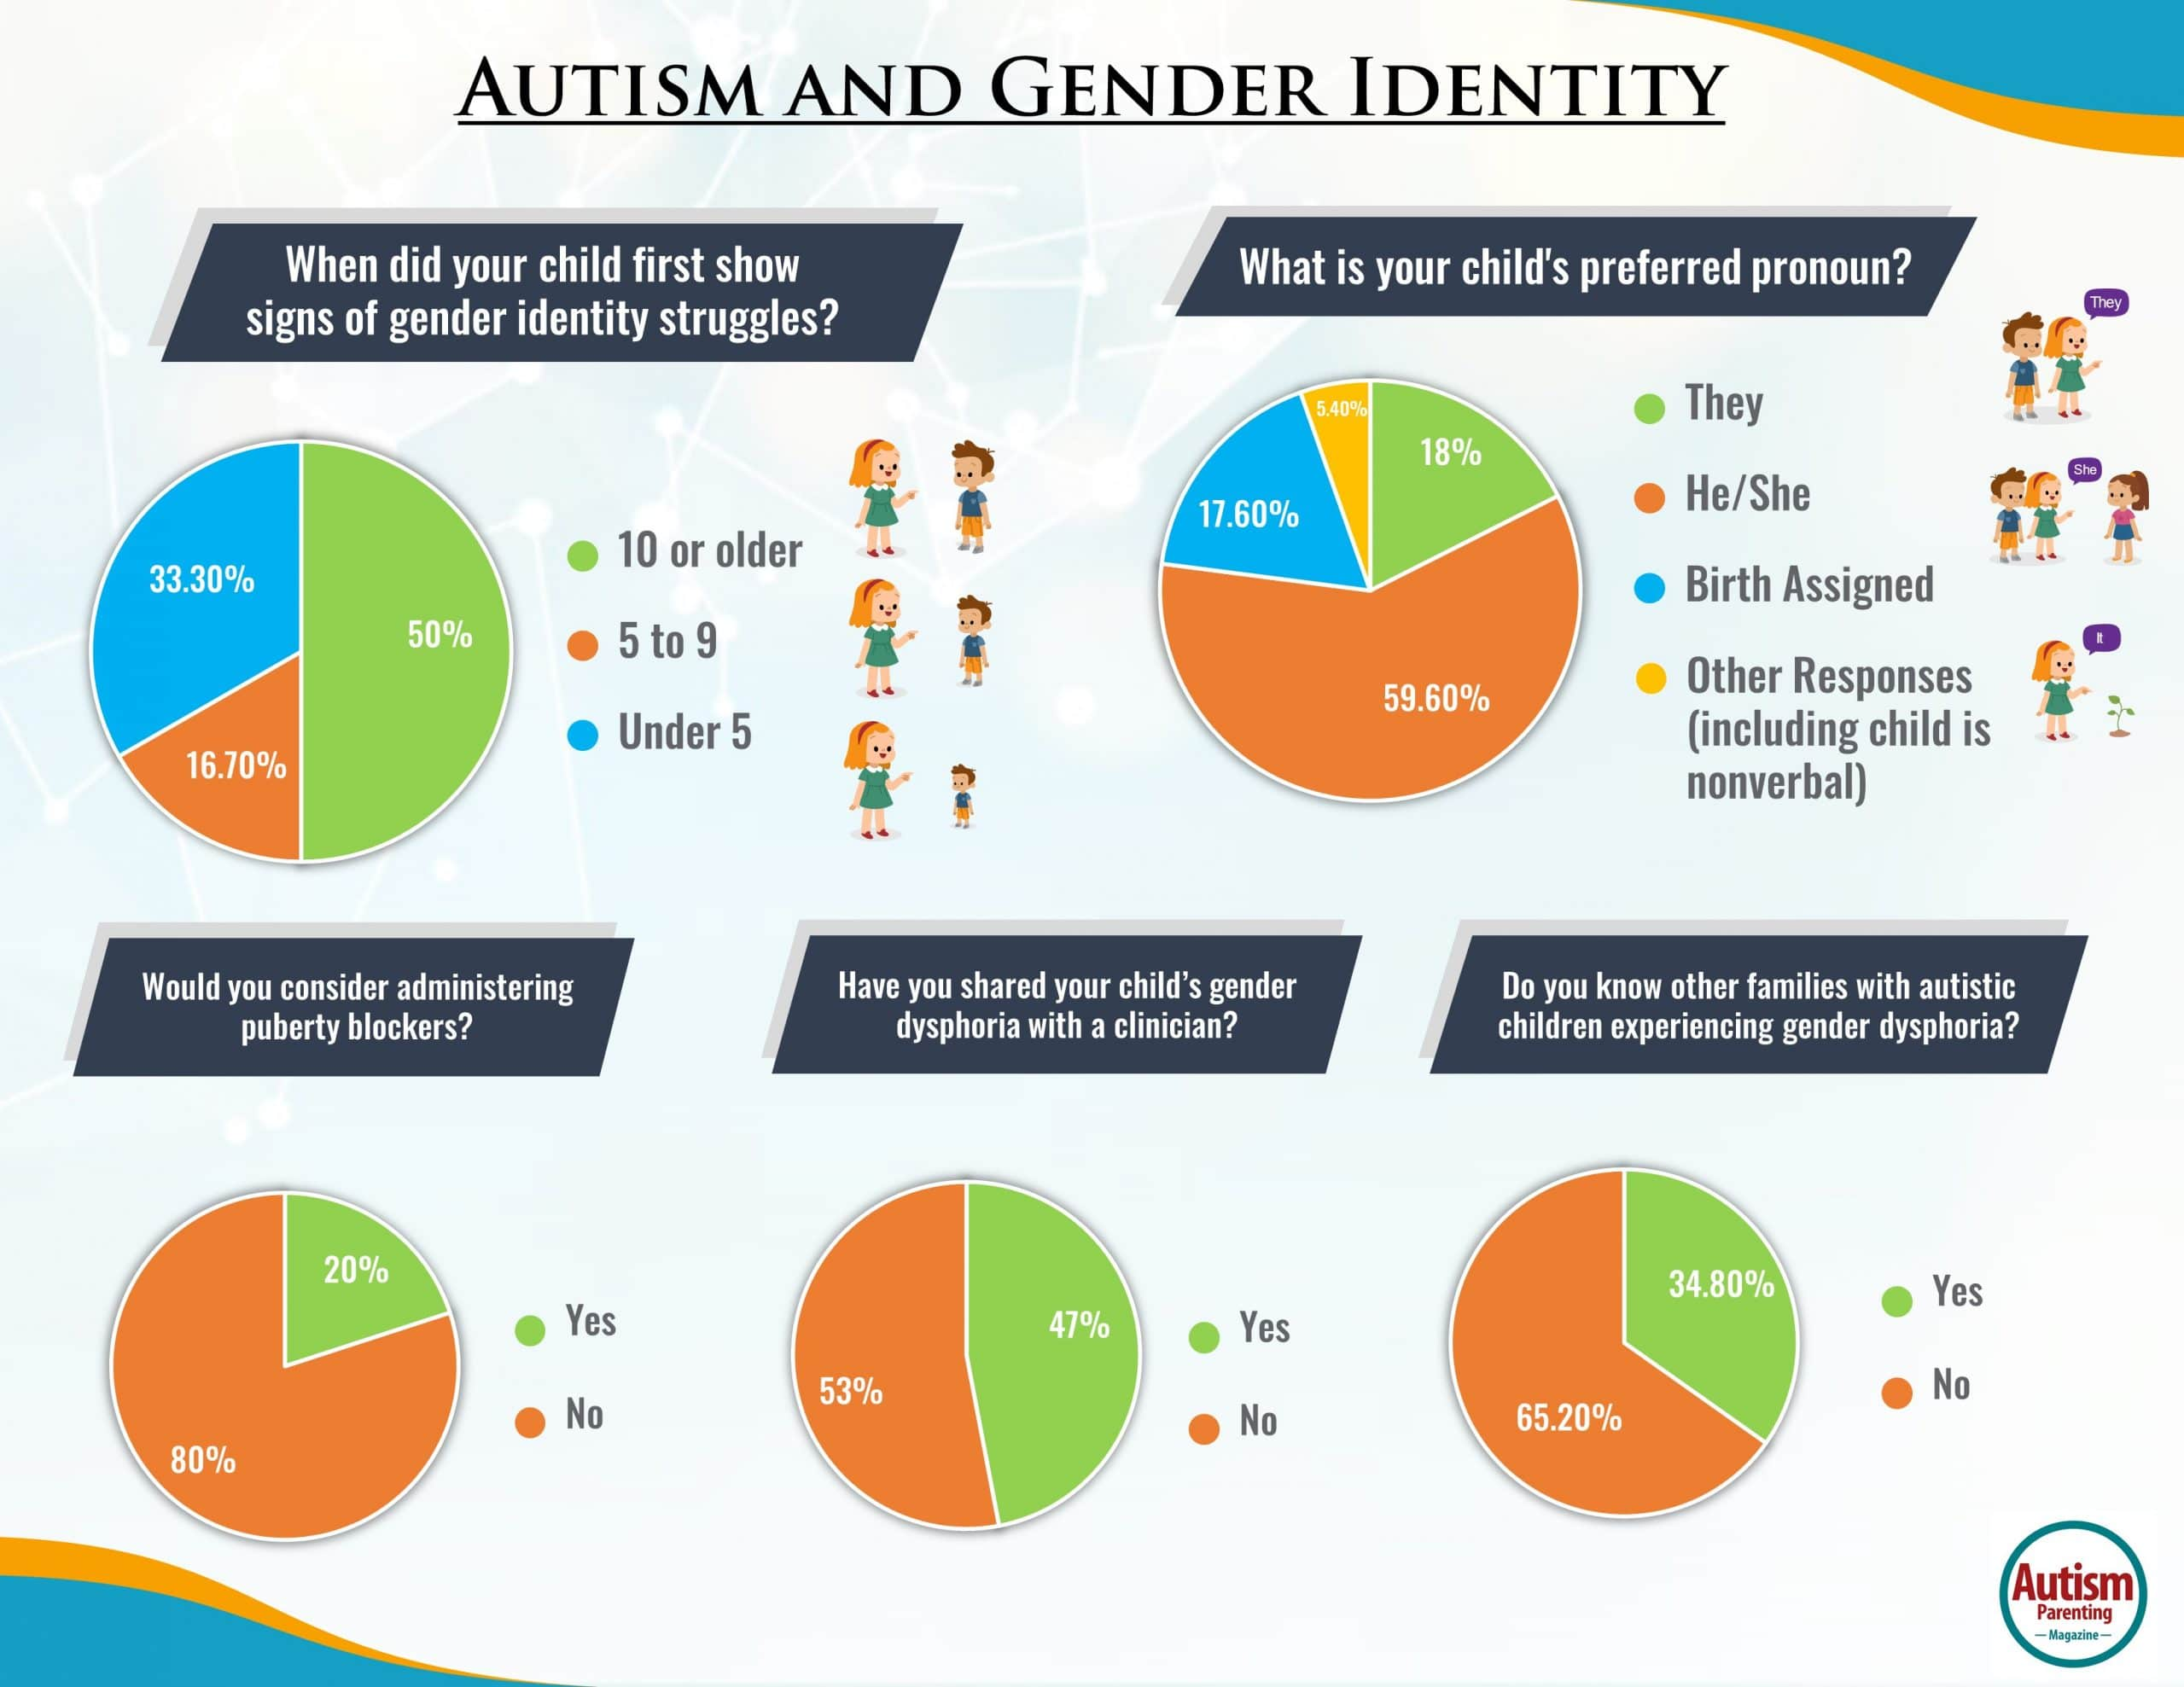 Autism and Gender Dysphoria: 5.7% of Autistic Children Struggle With Gender Identity